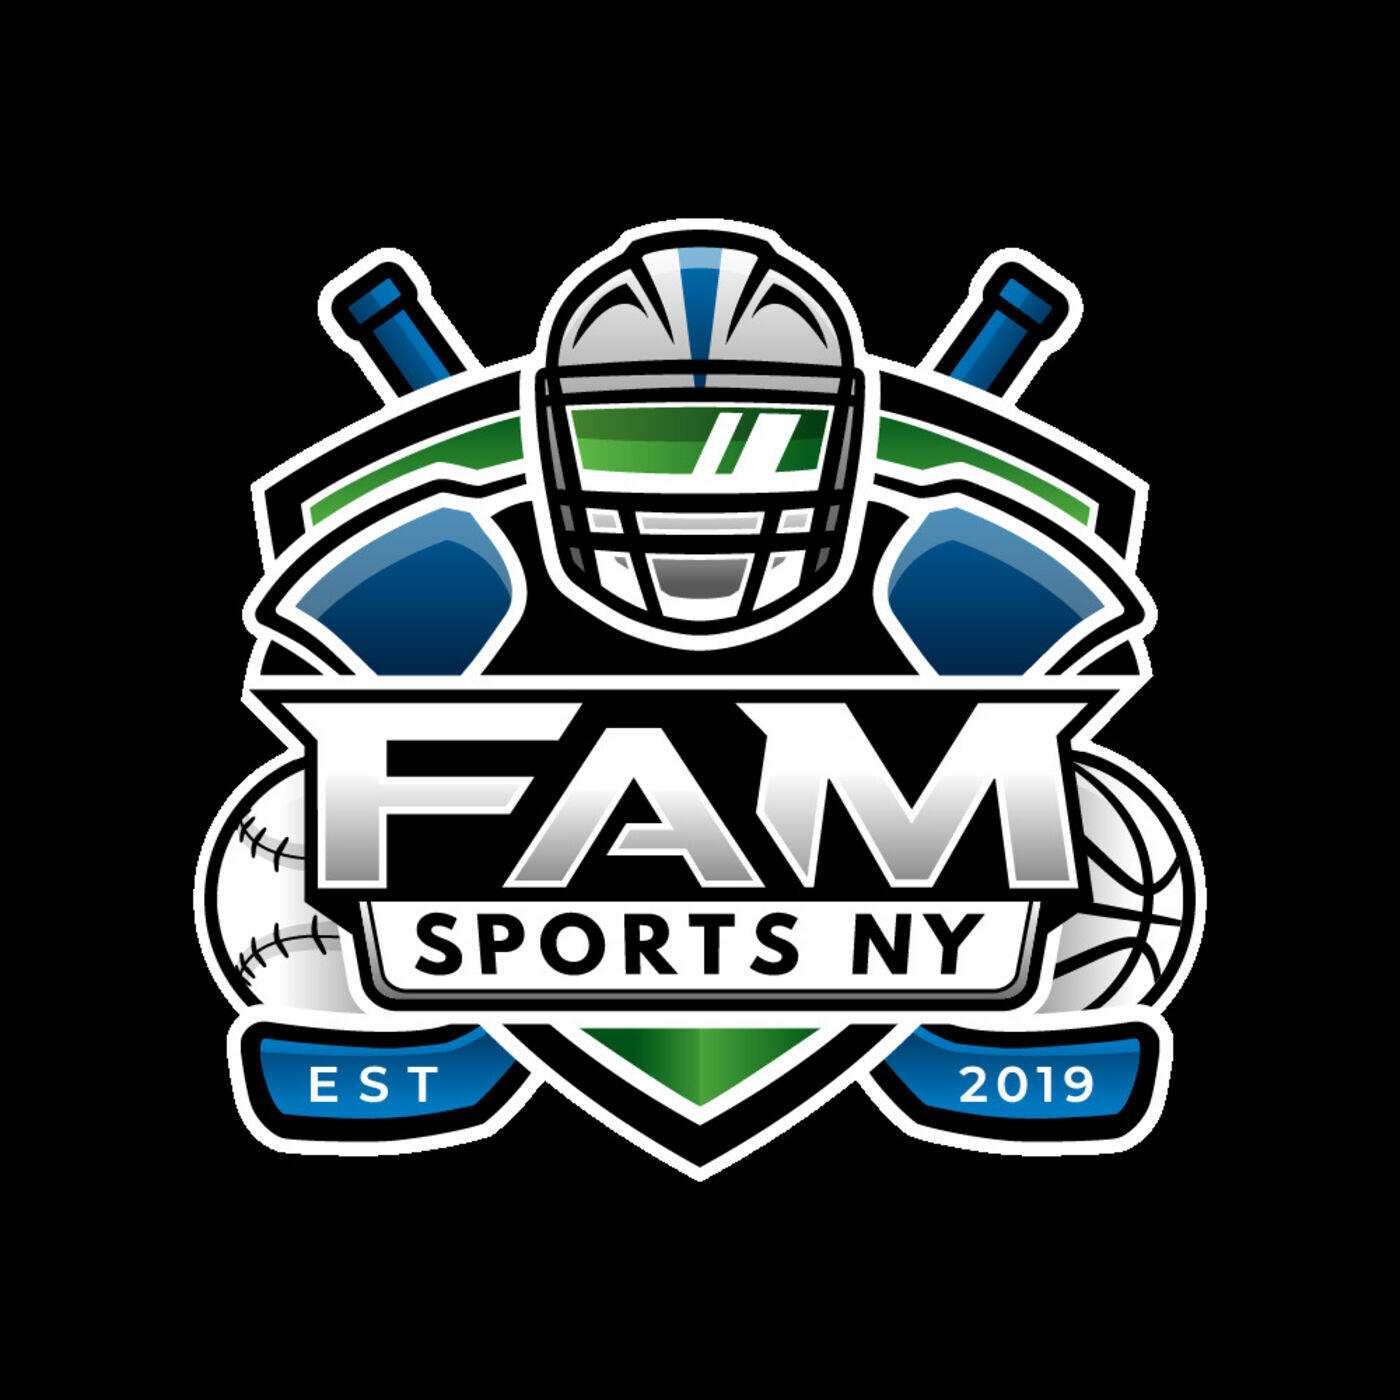 FaM Sports New York